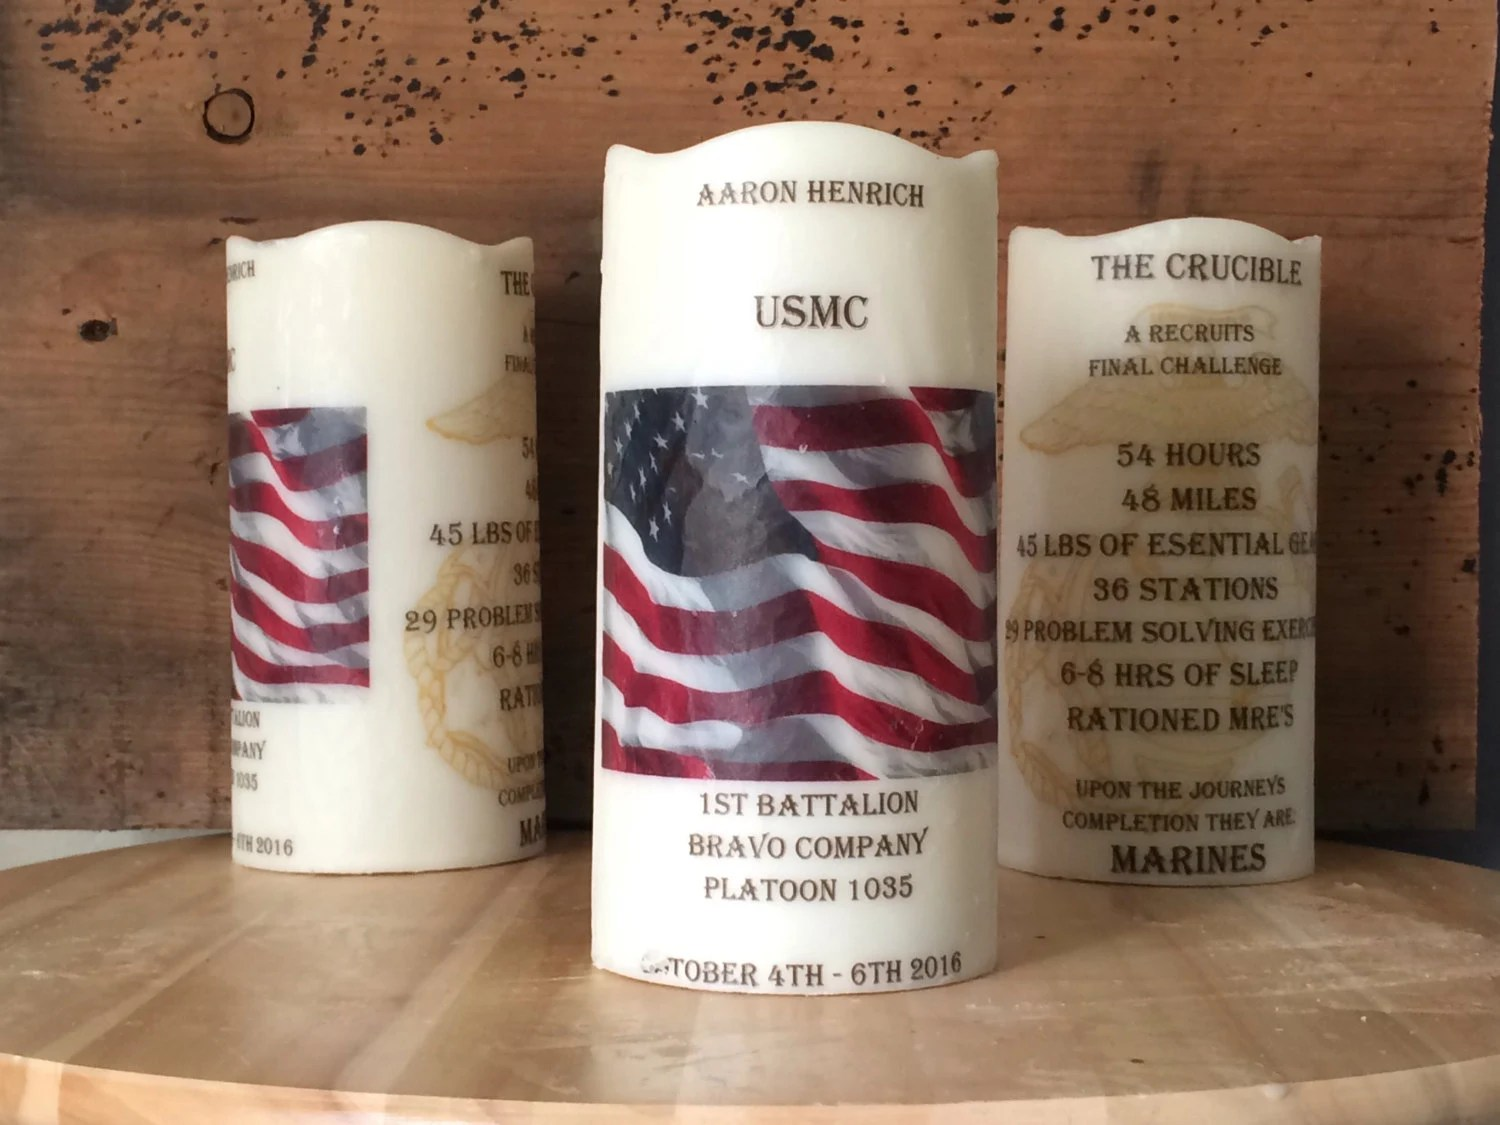 photo about Crucible Candle Printable referred to as Maritime Crucible Candles - Researching Mars